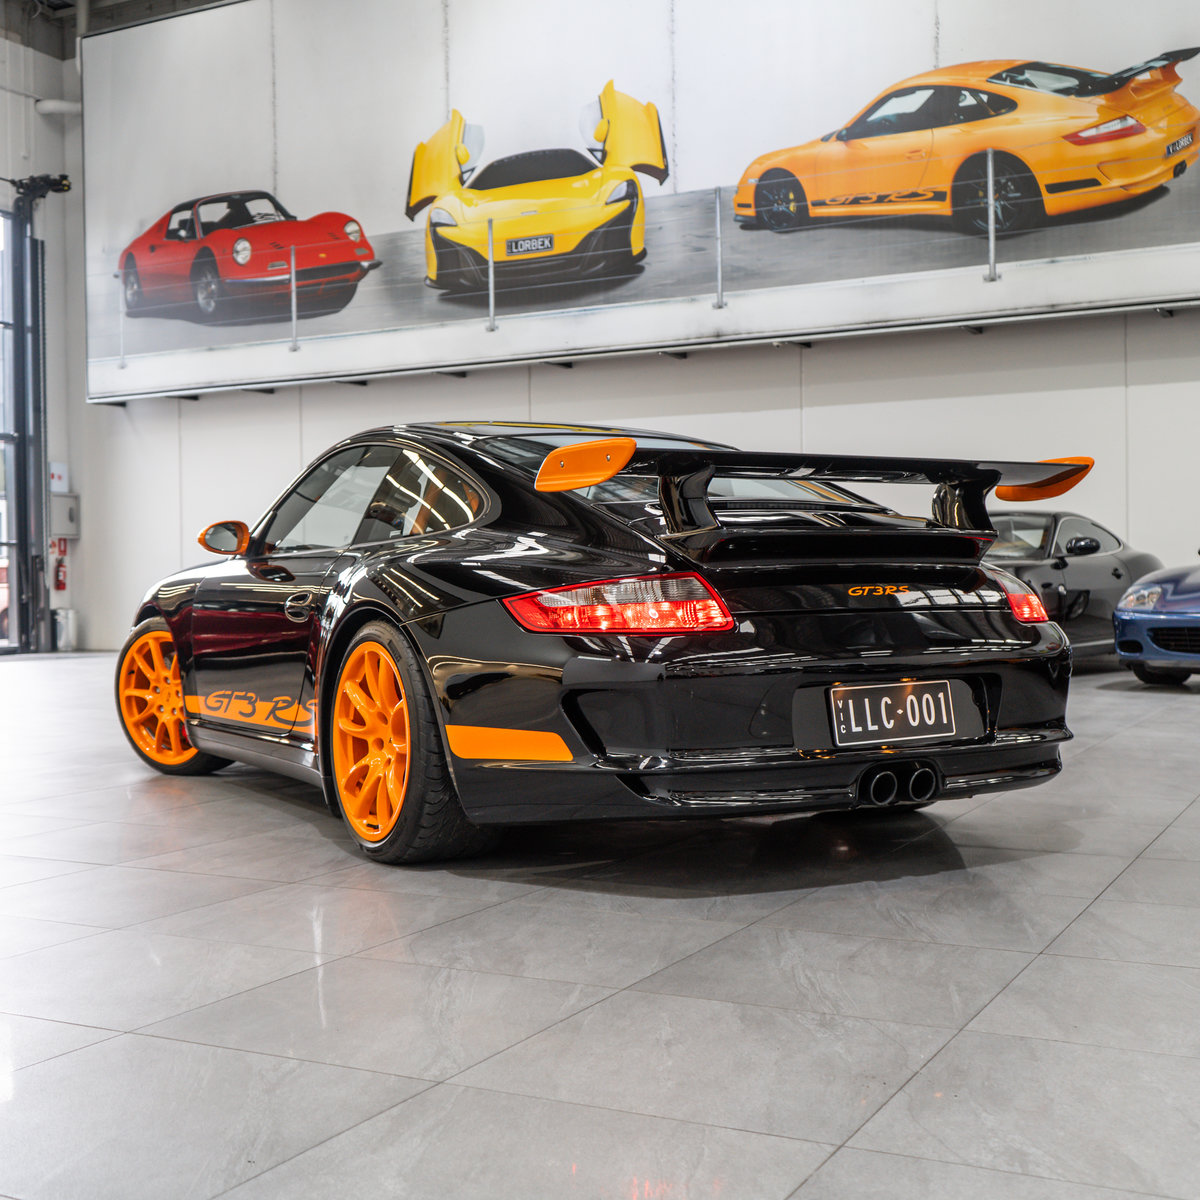 2007 PORSCHE 911 GT3 RS 997.1 For Sale (picture 2 of 6)